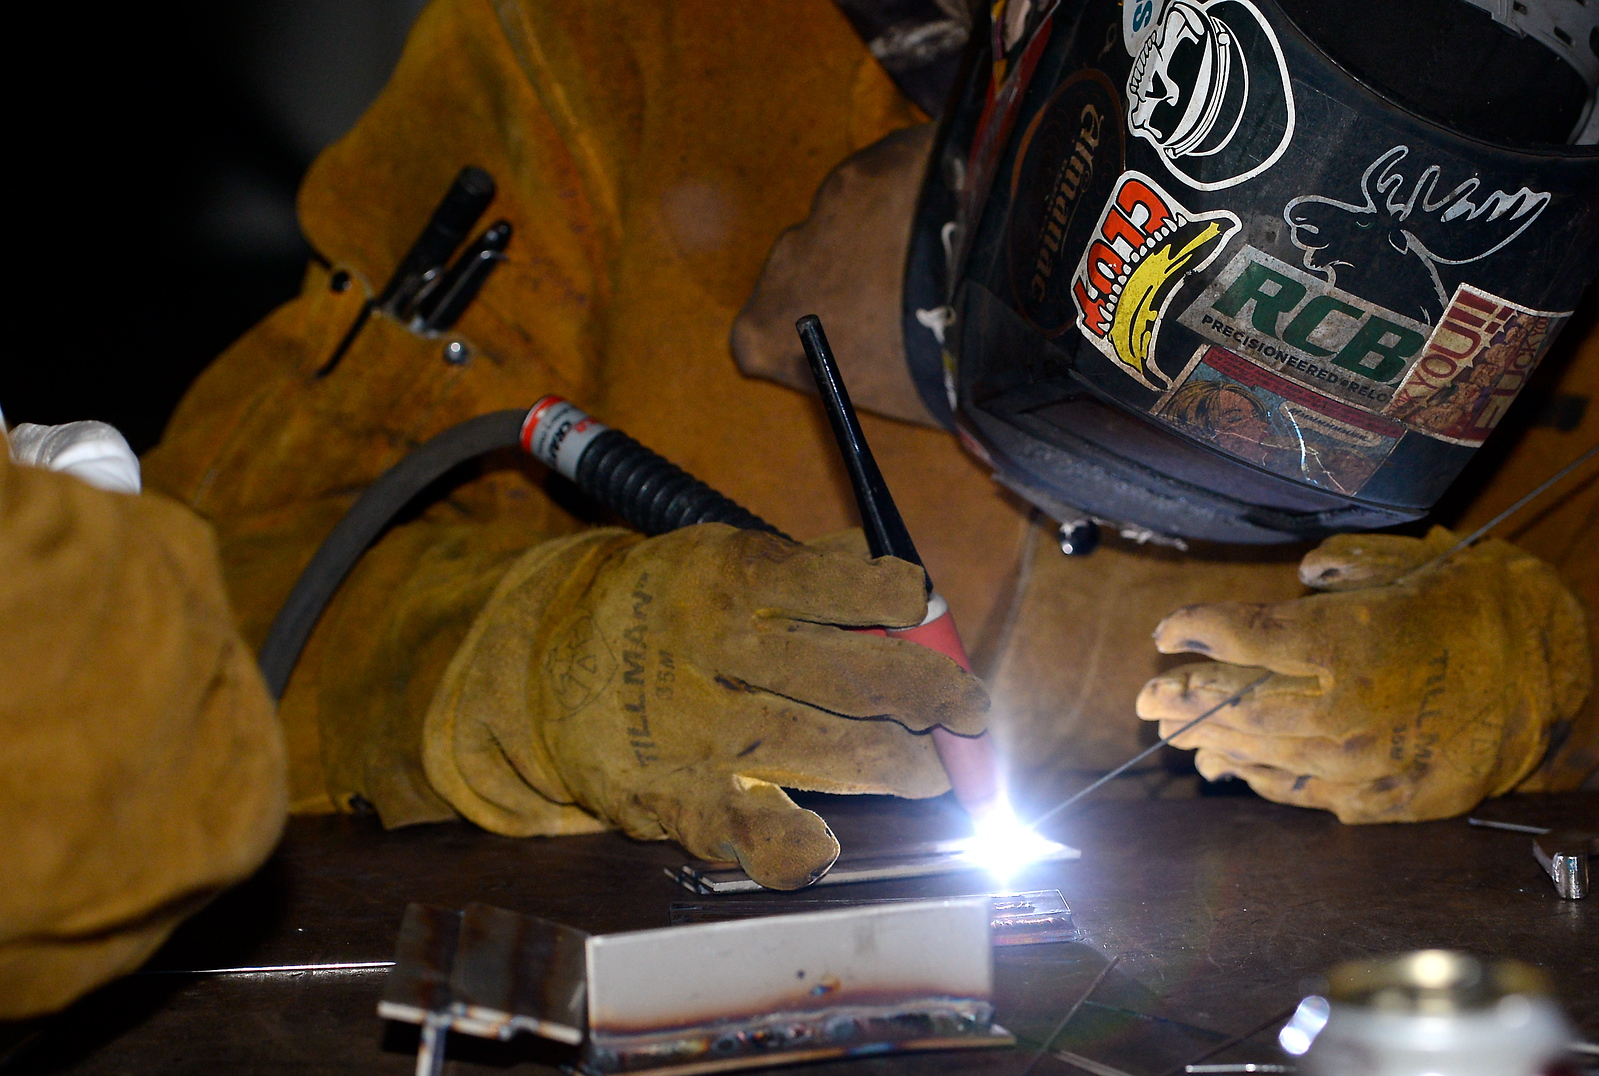 Students practice various forms of welding during the 2017 ARC Welding exposure class at Butte College Wed. Jan. 18, 2017.  (Bill Husa -- Enterprise-Record)